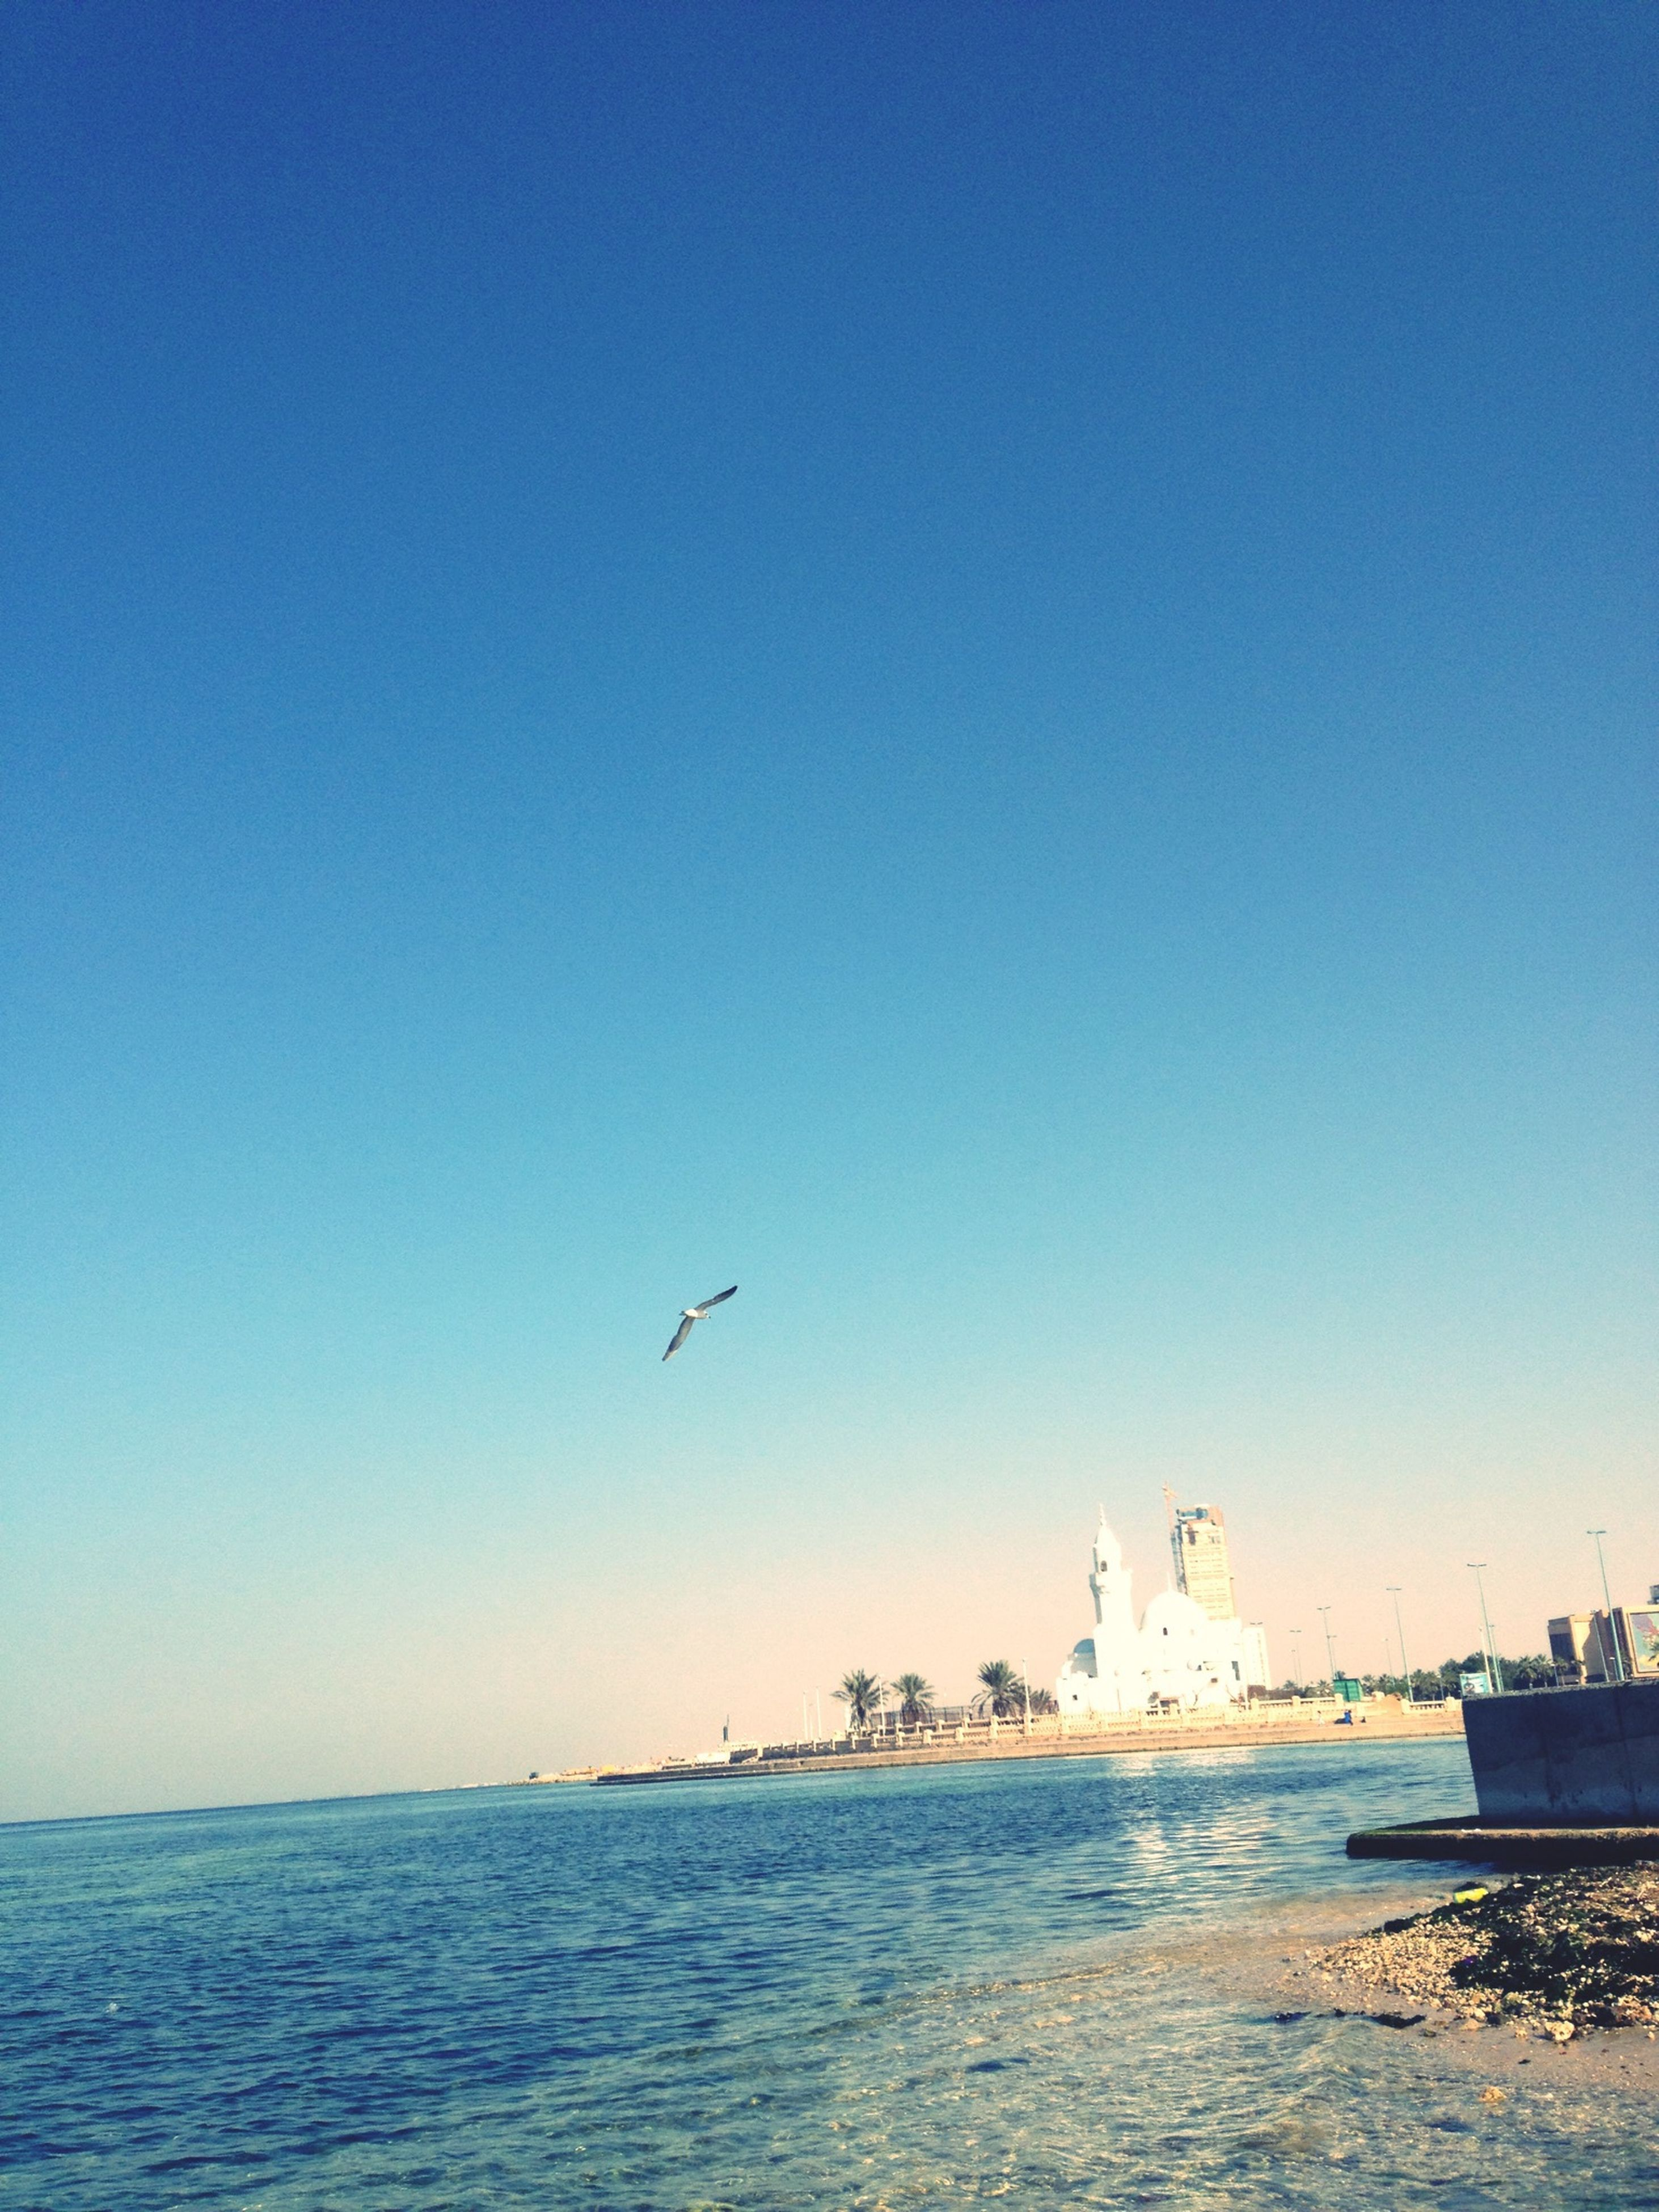 clear sky, copy space, water, sea, bird, tranquil scene, tranquility, scenics, animal themes, flying, blue, beauty in nature, transportation, nature, animals in the wild, wildlife, day, outdoors, sky, idyllic